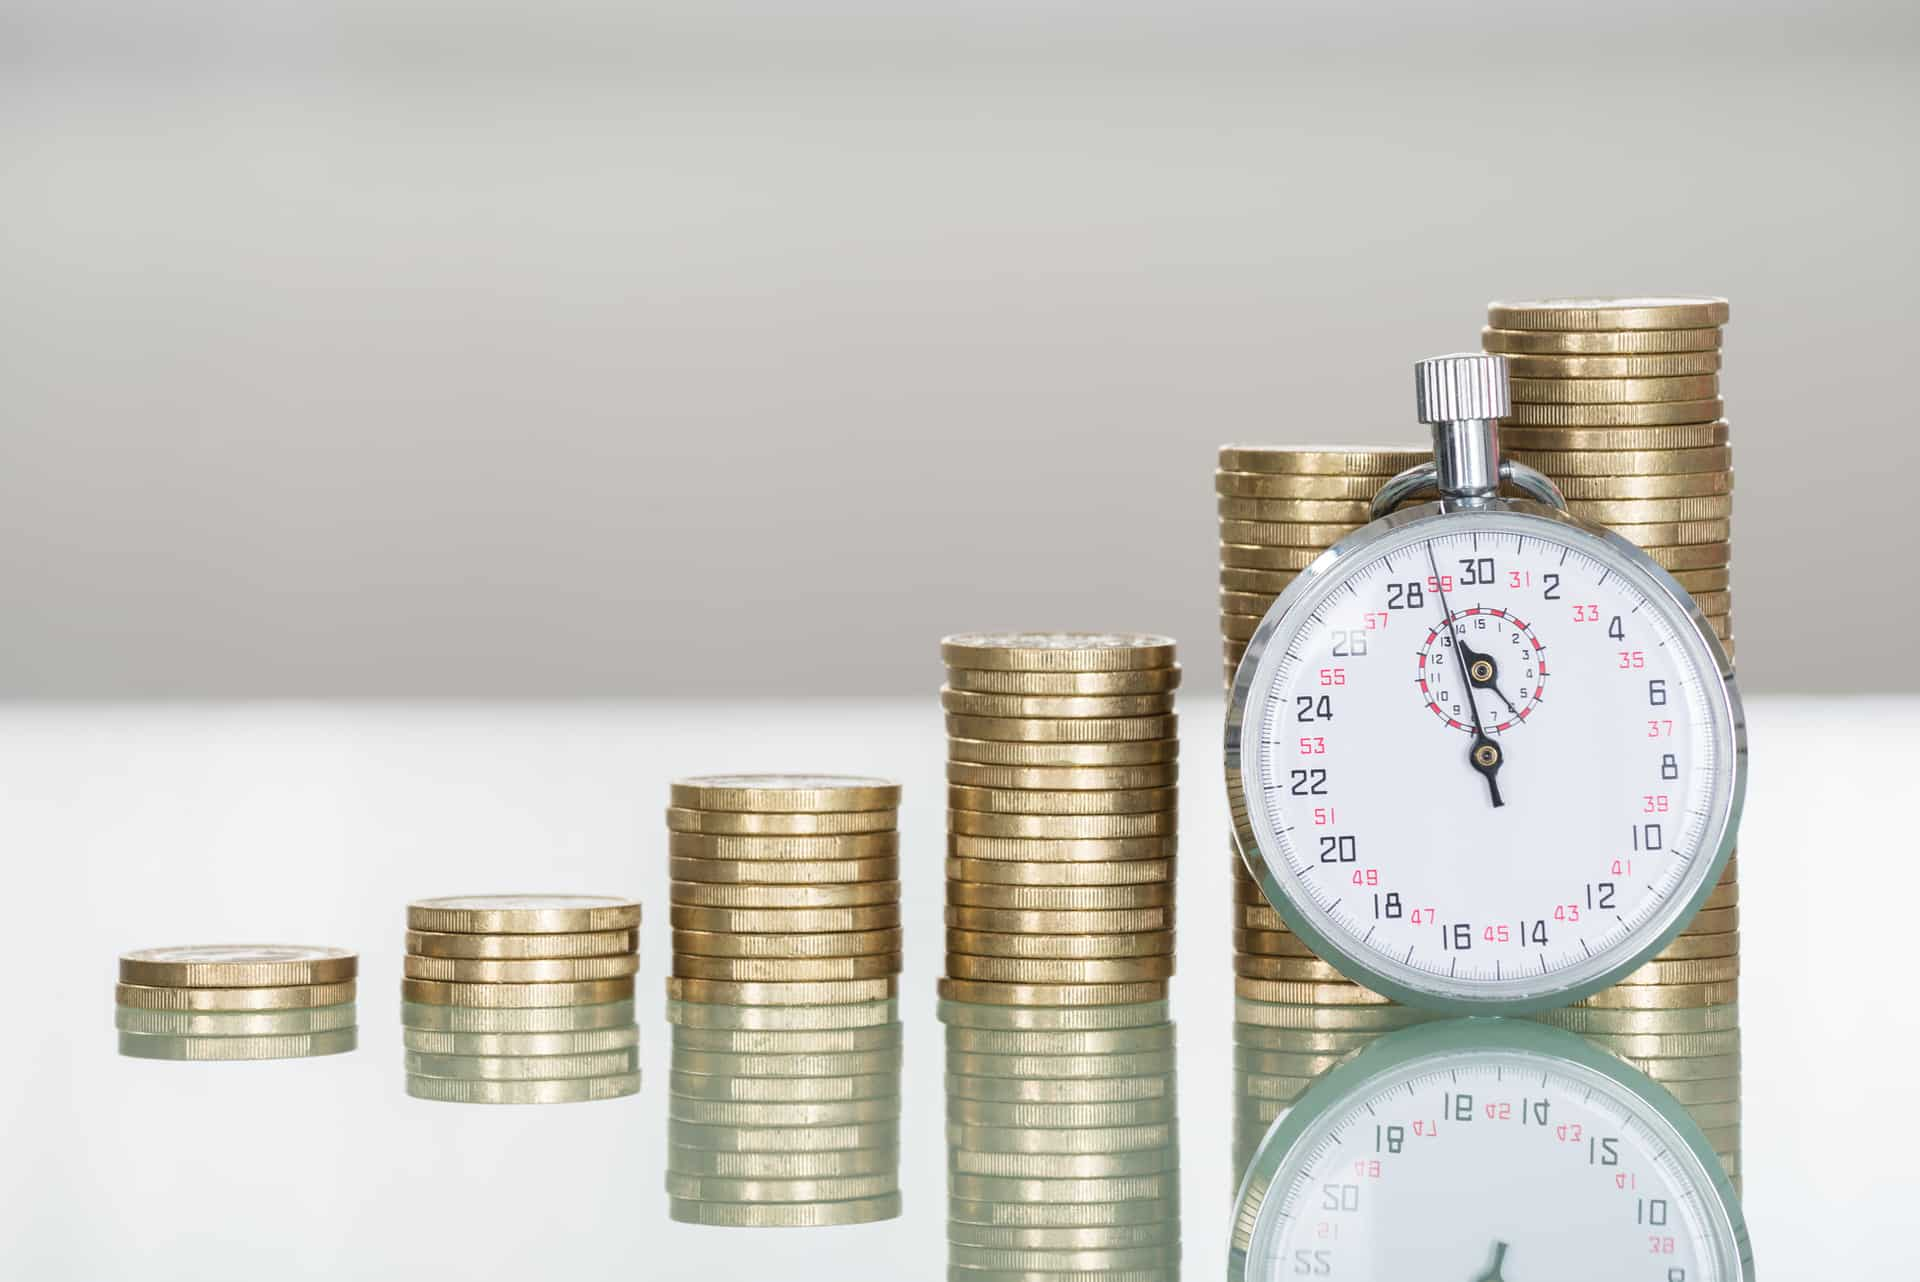 Save time and money when you buy high-quality articles